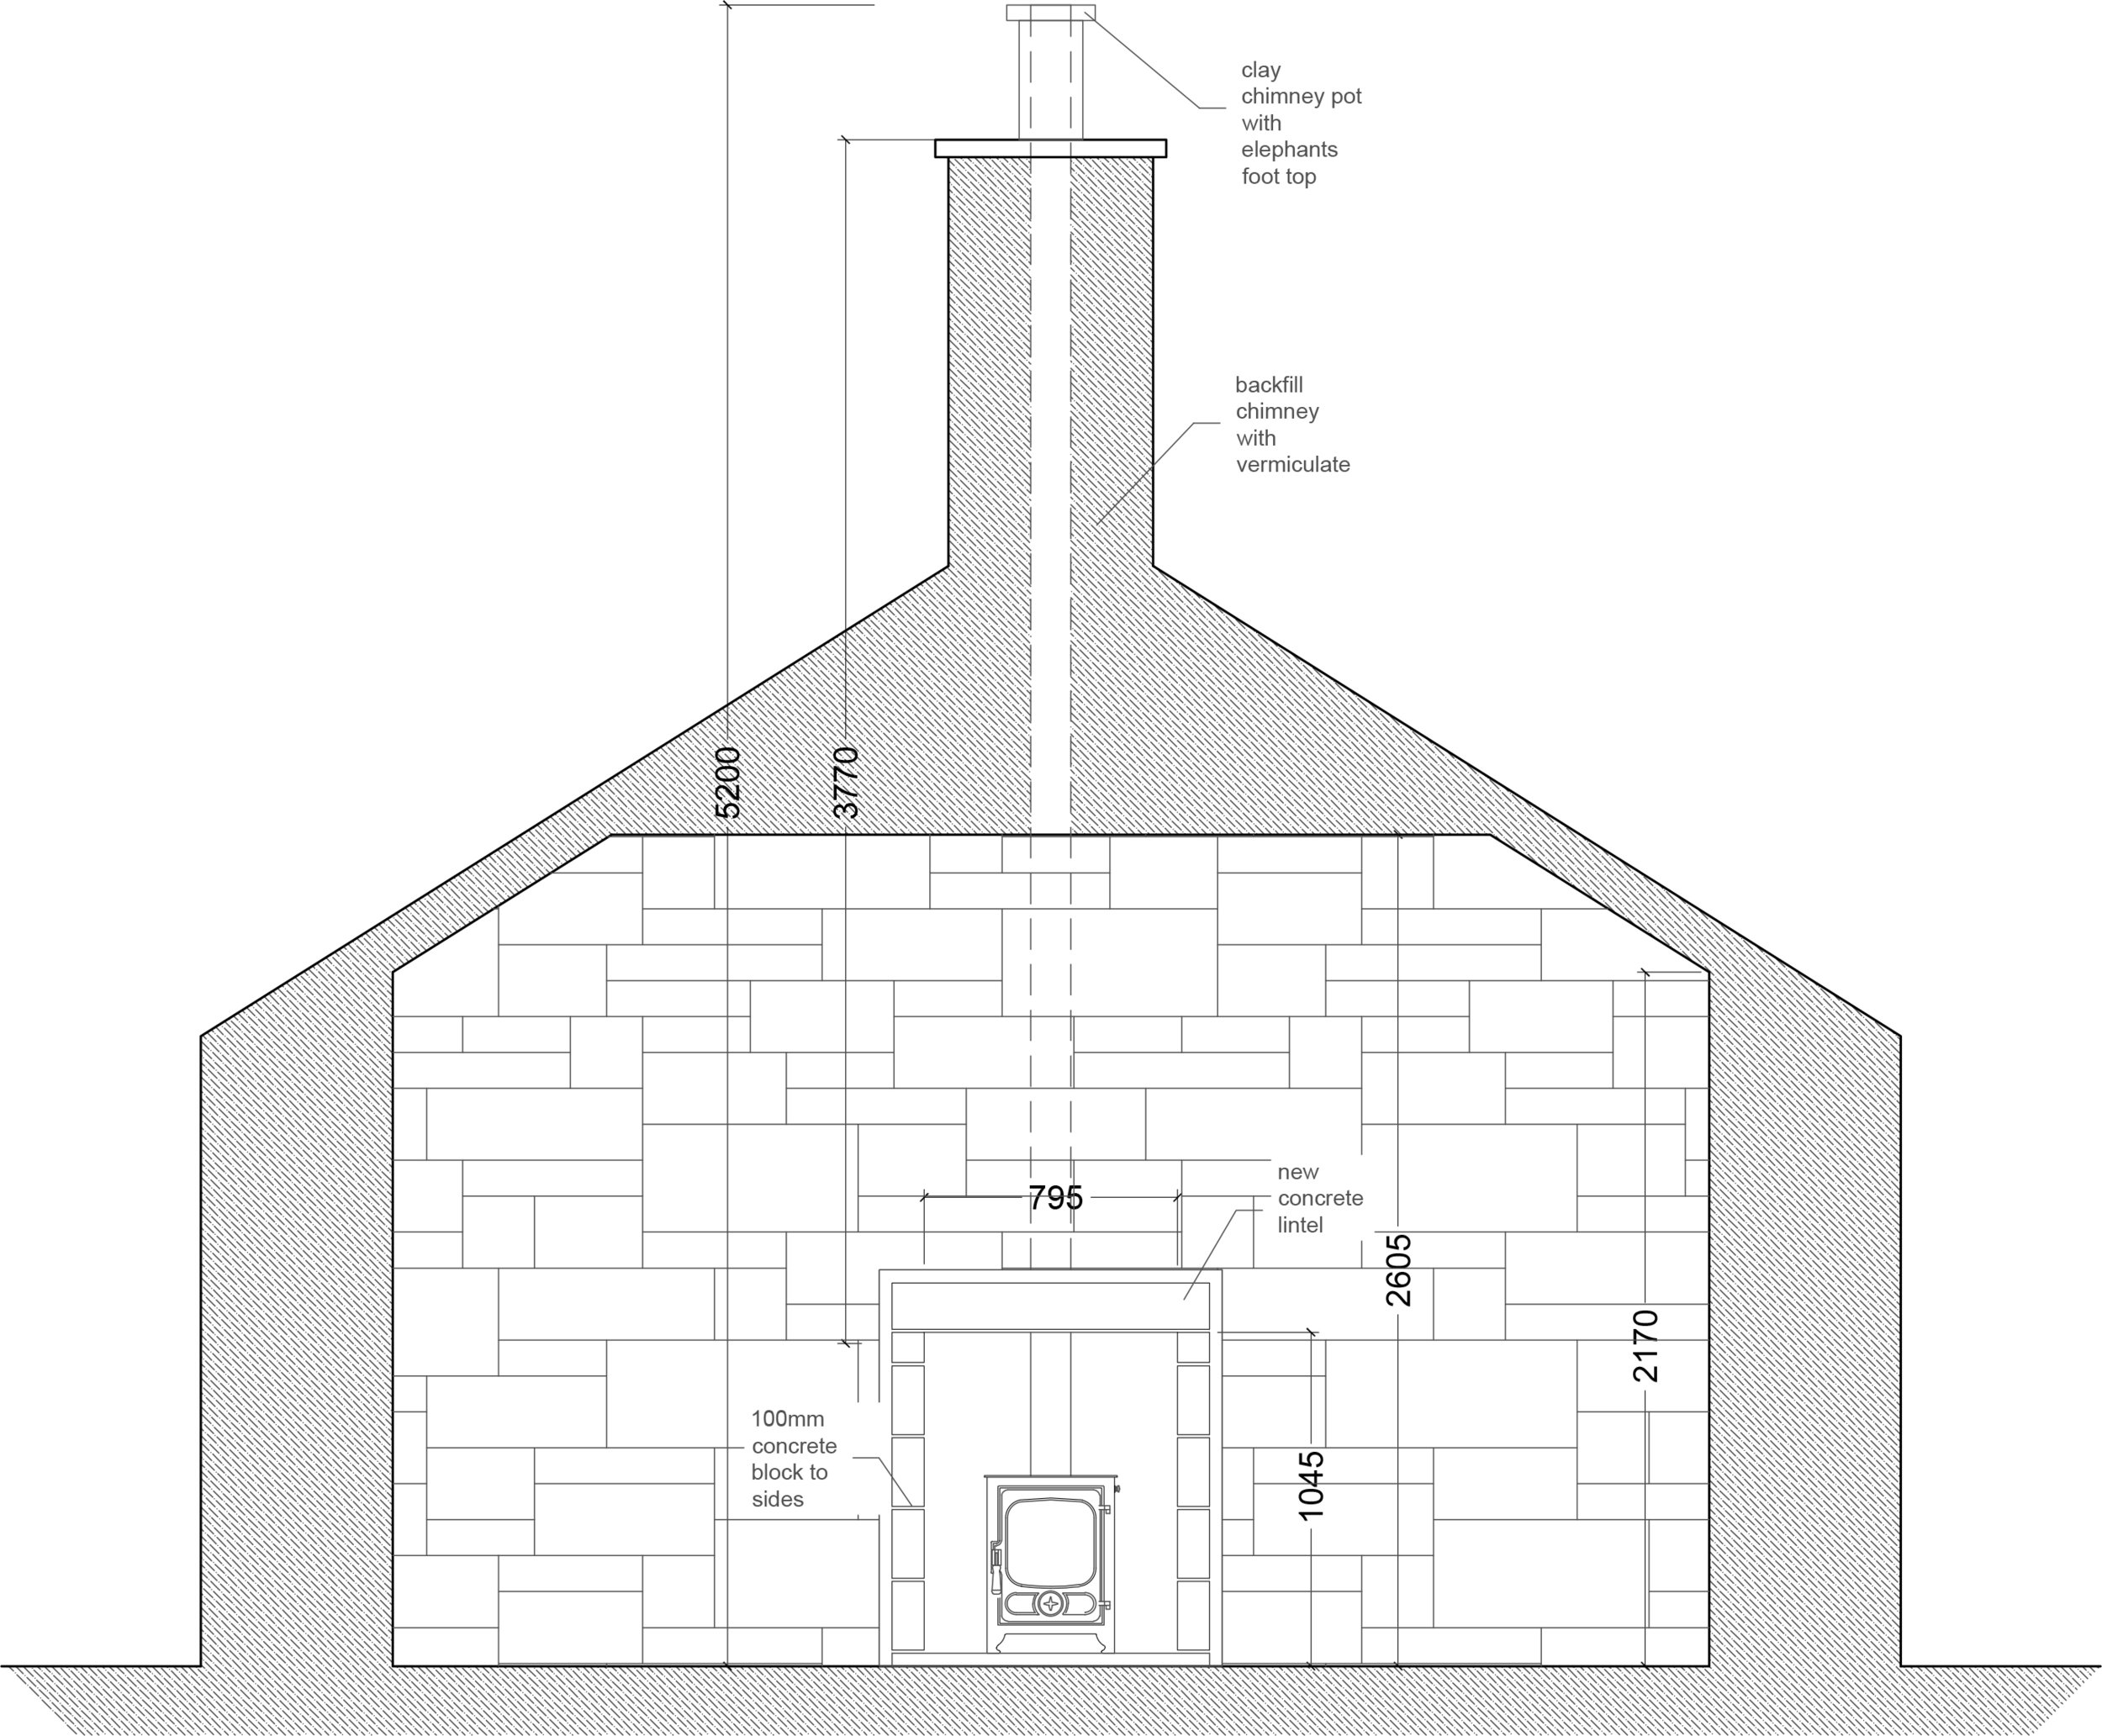 Drawing a sketch elevation to check the dimensions required for the flue and associated kit gives you a guide and confidence that everything will fit ok